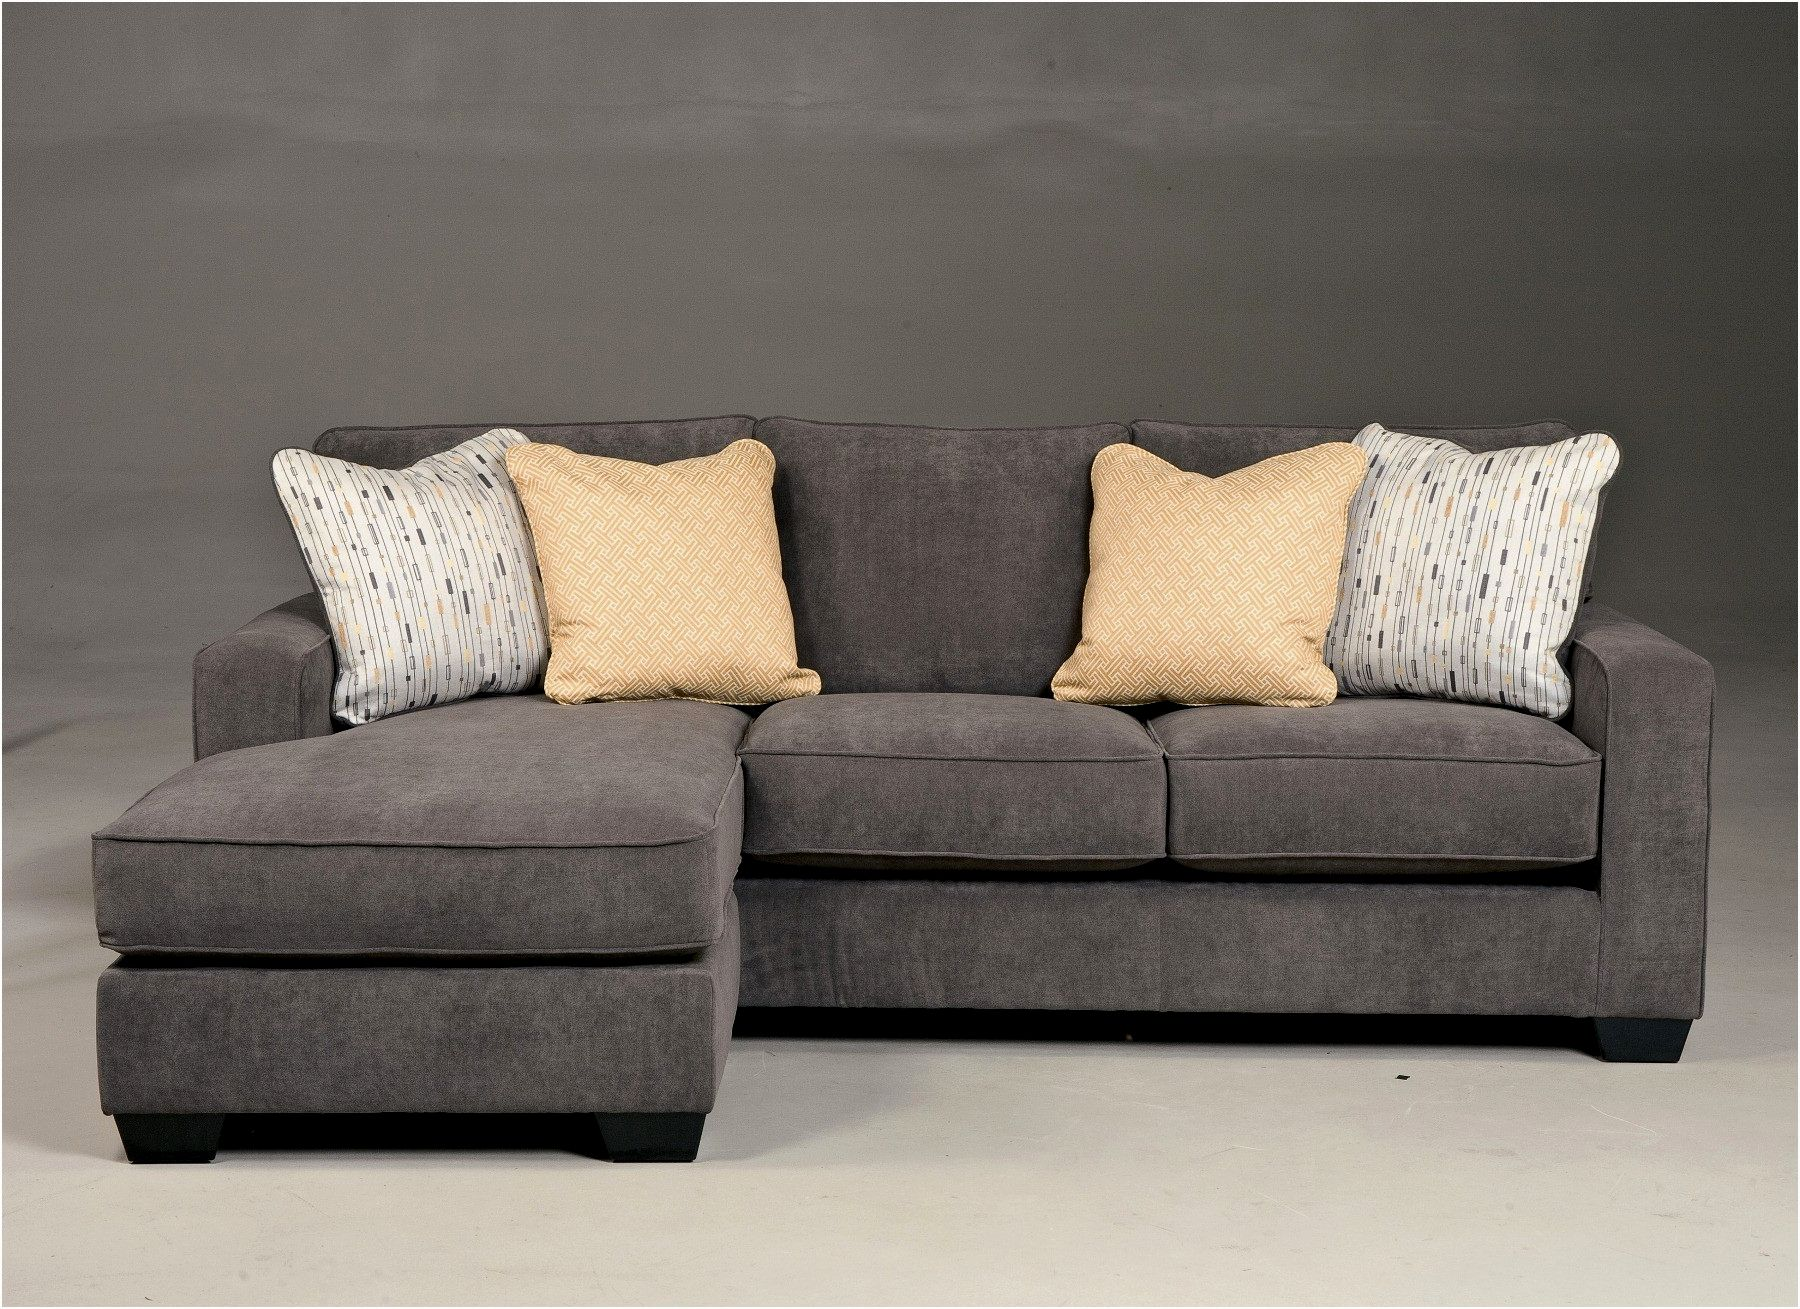 lovely sleeper sectional sofa decoration-Modern Sleeper Sectional sofa Plan